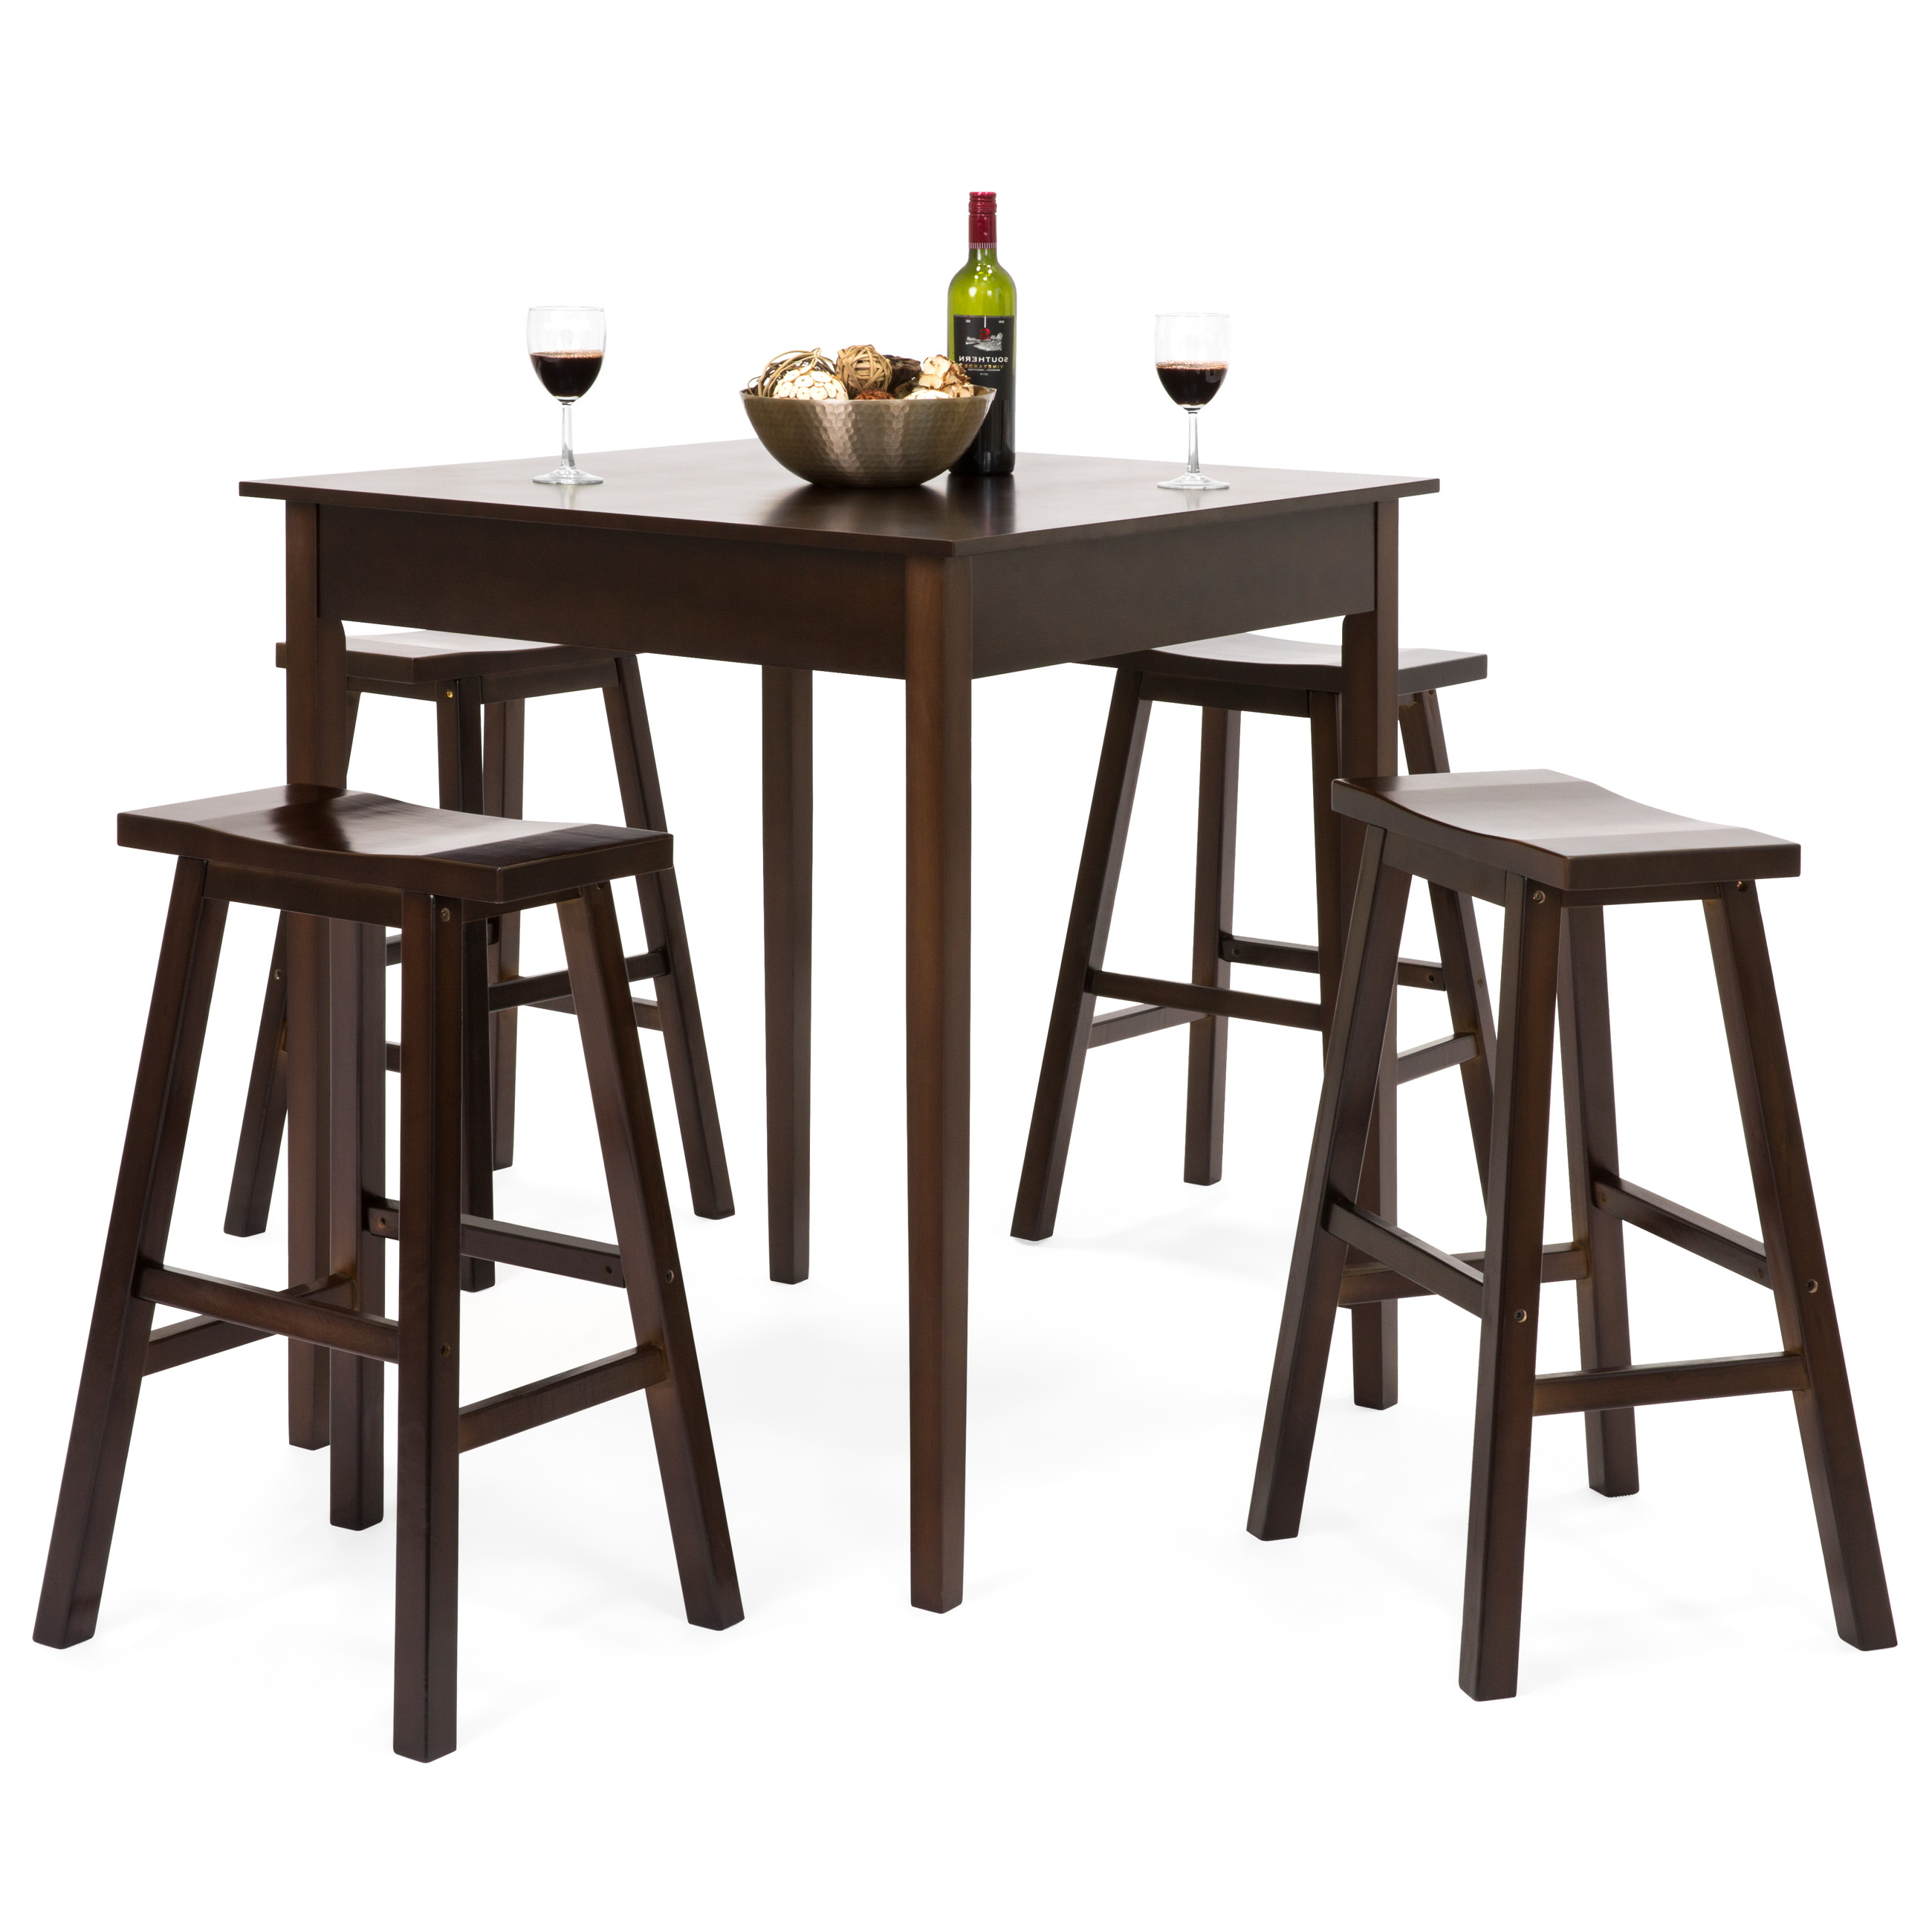 Newest Best Choice Products 5 Piece Solid Wood Dining Pub Bar Table Set With 4  Backless Saddle Stools Inside Biggs 5 Piece Counter Height Solid Wood Dining Sets (Set Of 5) (Gallery 11 of 20)